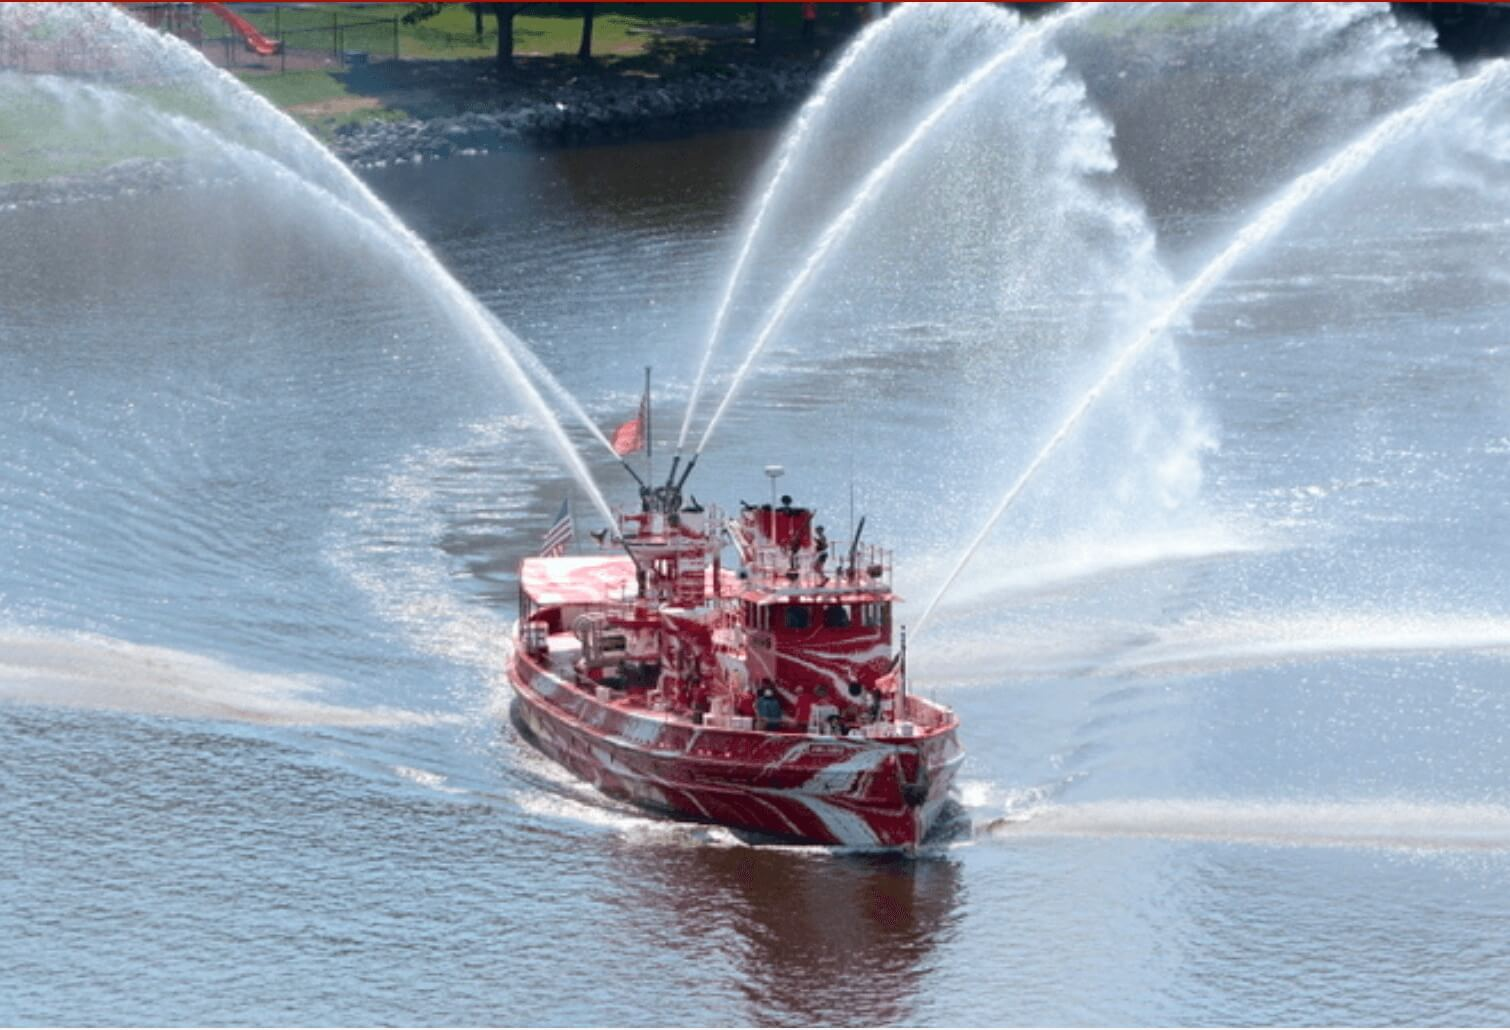 John J. Harvey fireboat pumping water